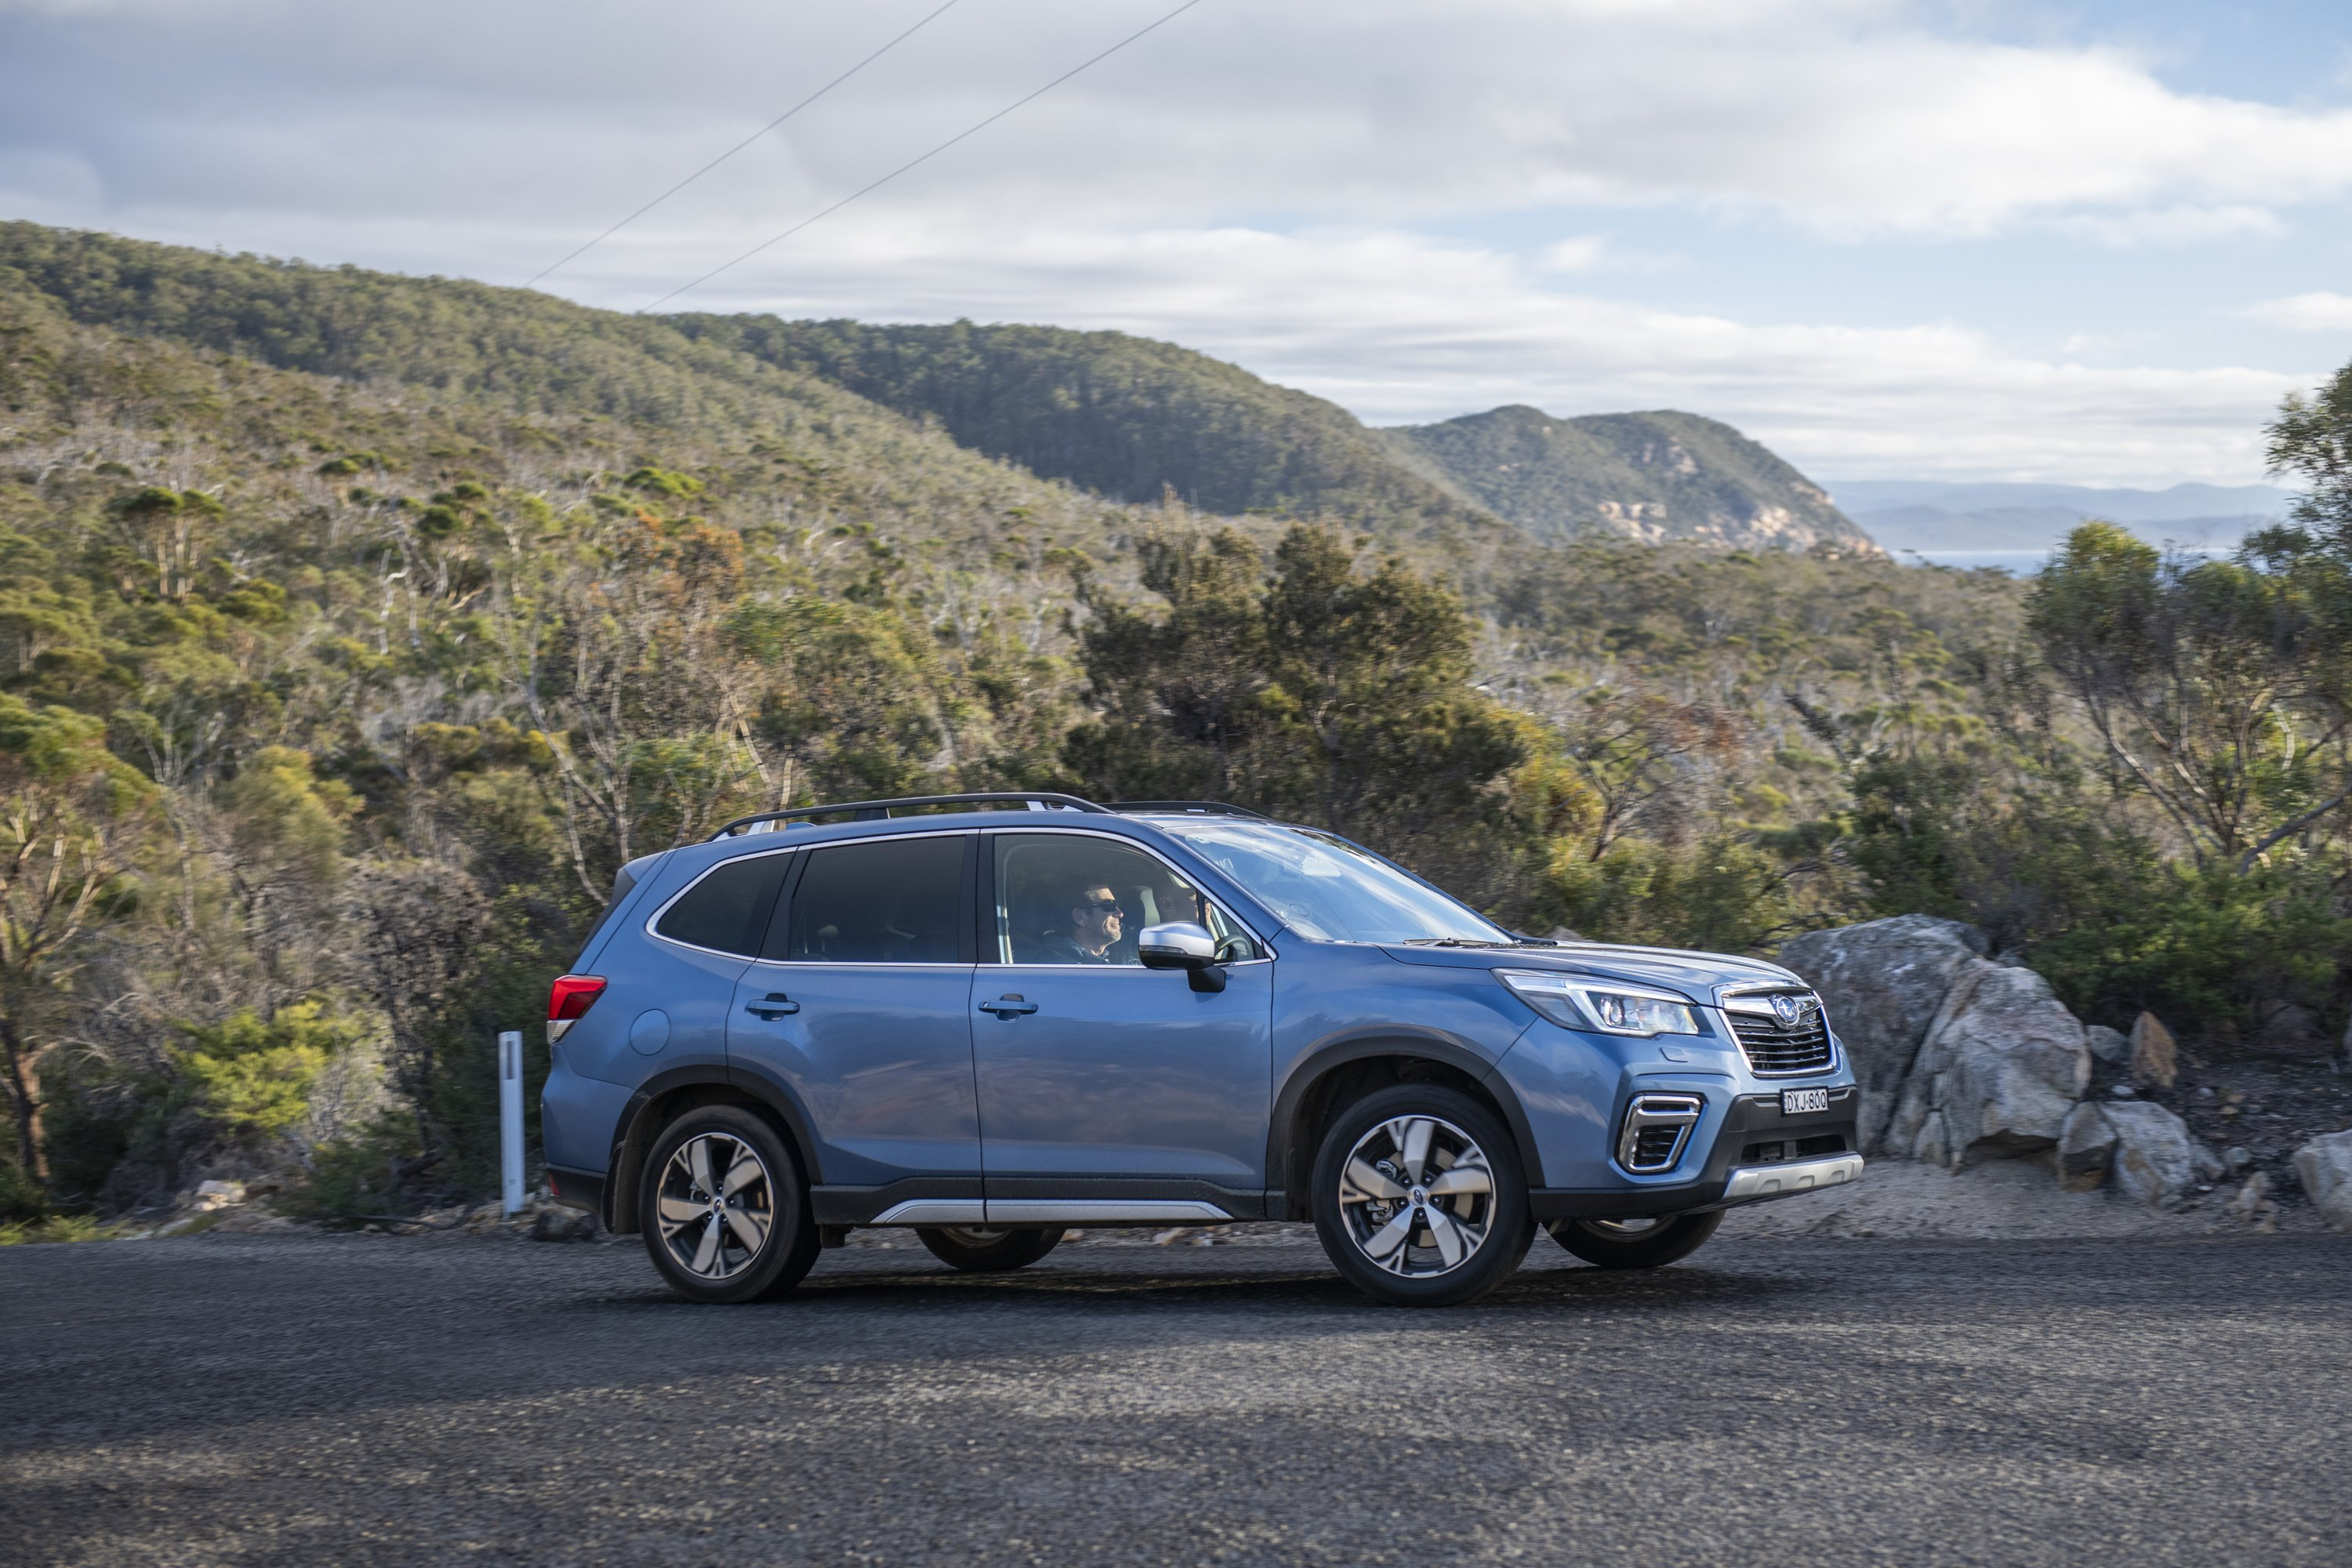 2019 Subaru Tasmania SUV Experience, June 19-21. Featuring Subaru Forester, Outback and  XV vehicles. (Photo Narrative Post/Matthias Engesser)